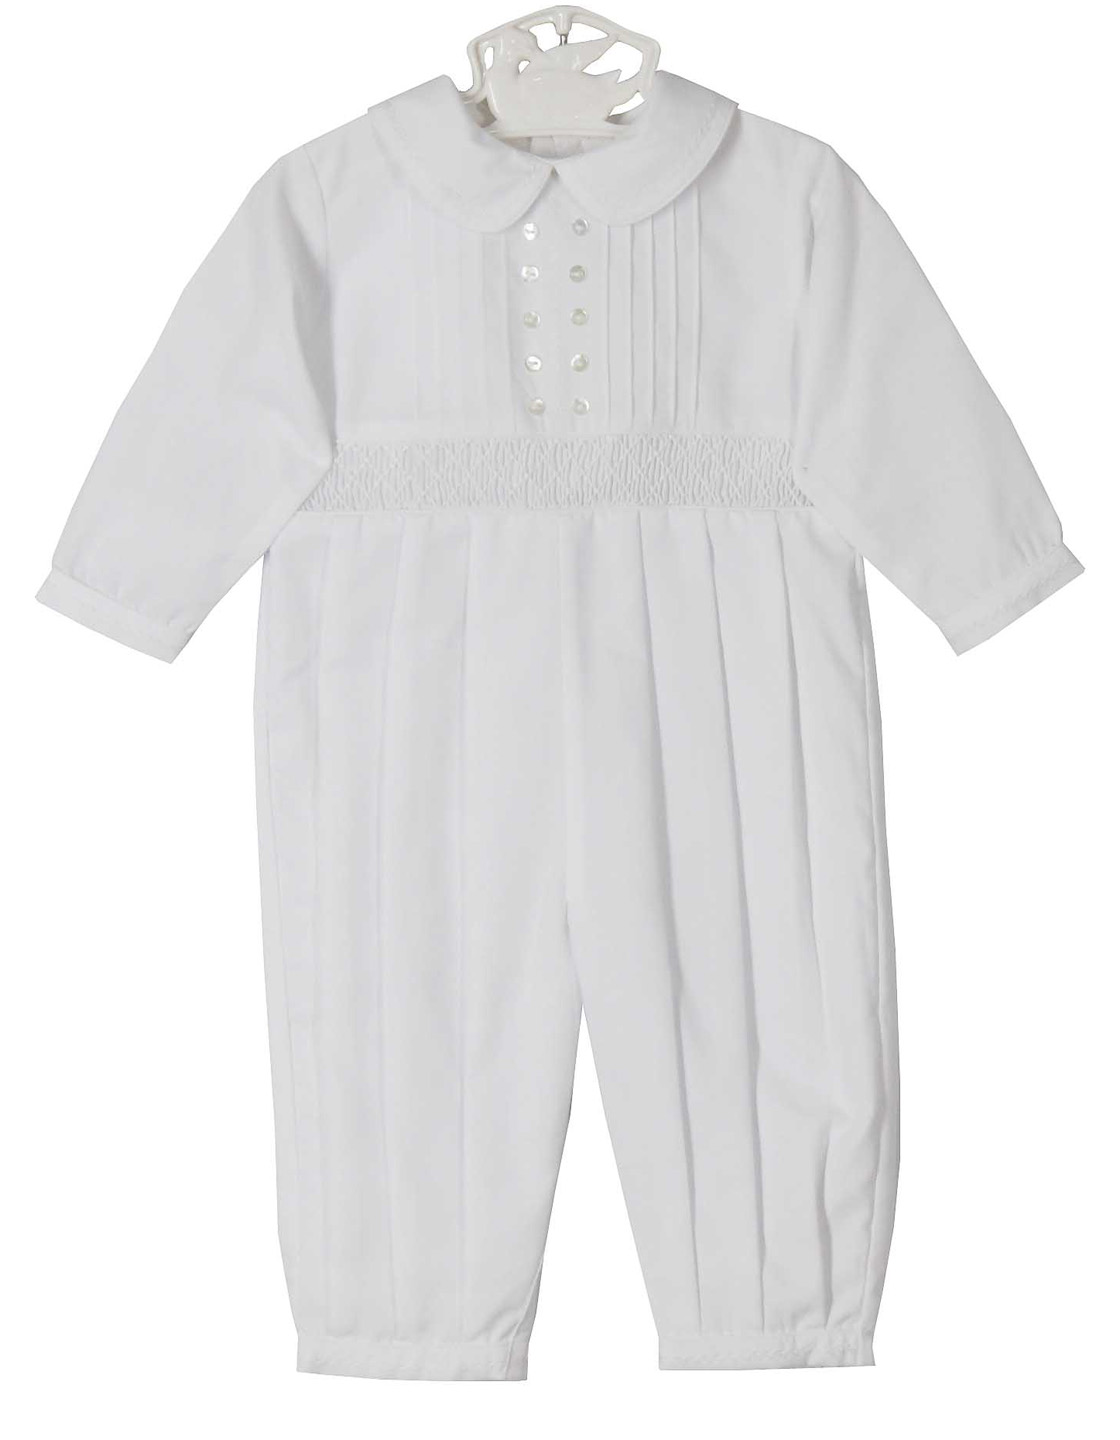 b745e05e4 NEW Sarah Louise White Smocked Romper with Pintucks and White  Featherstitching